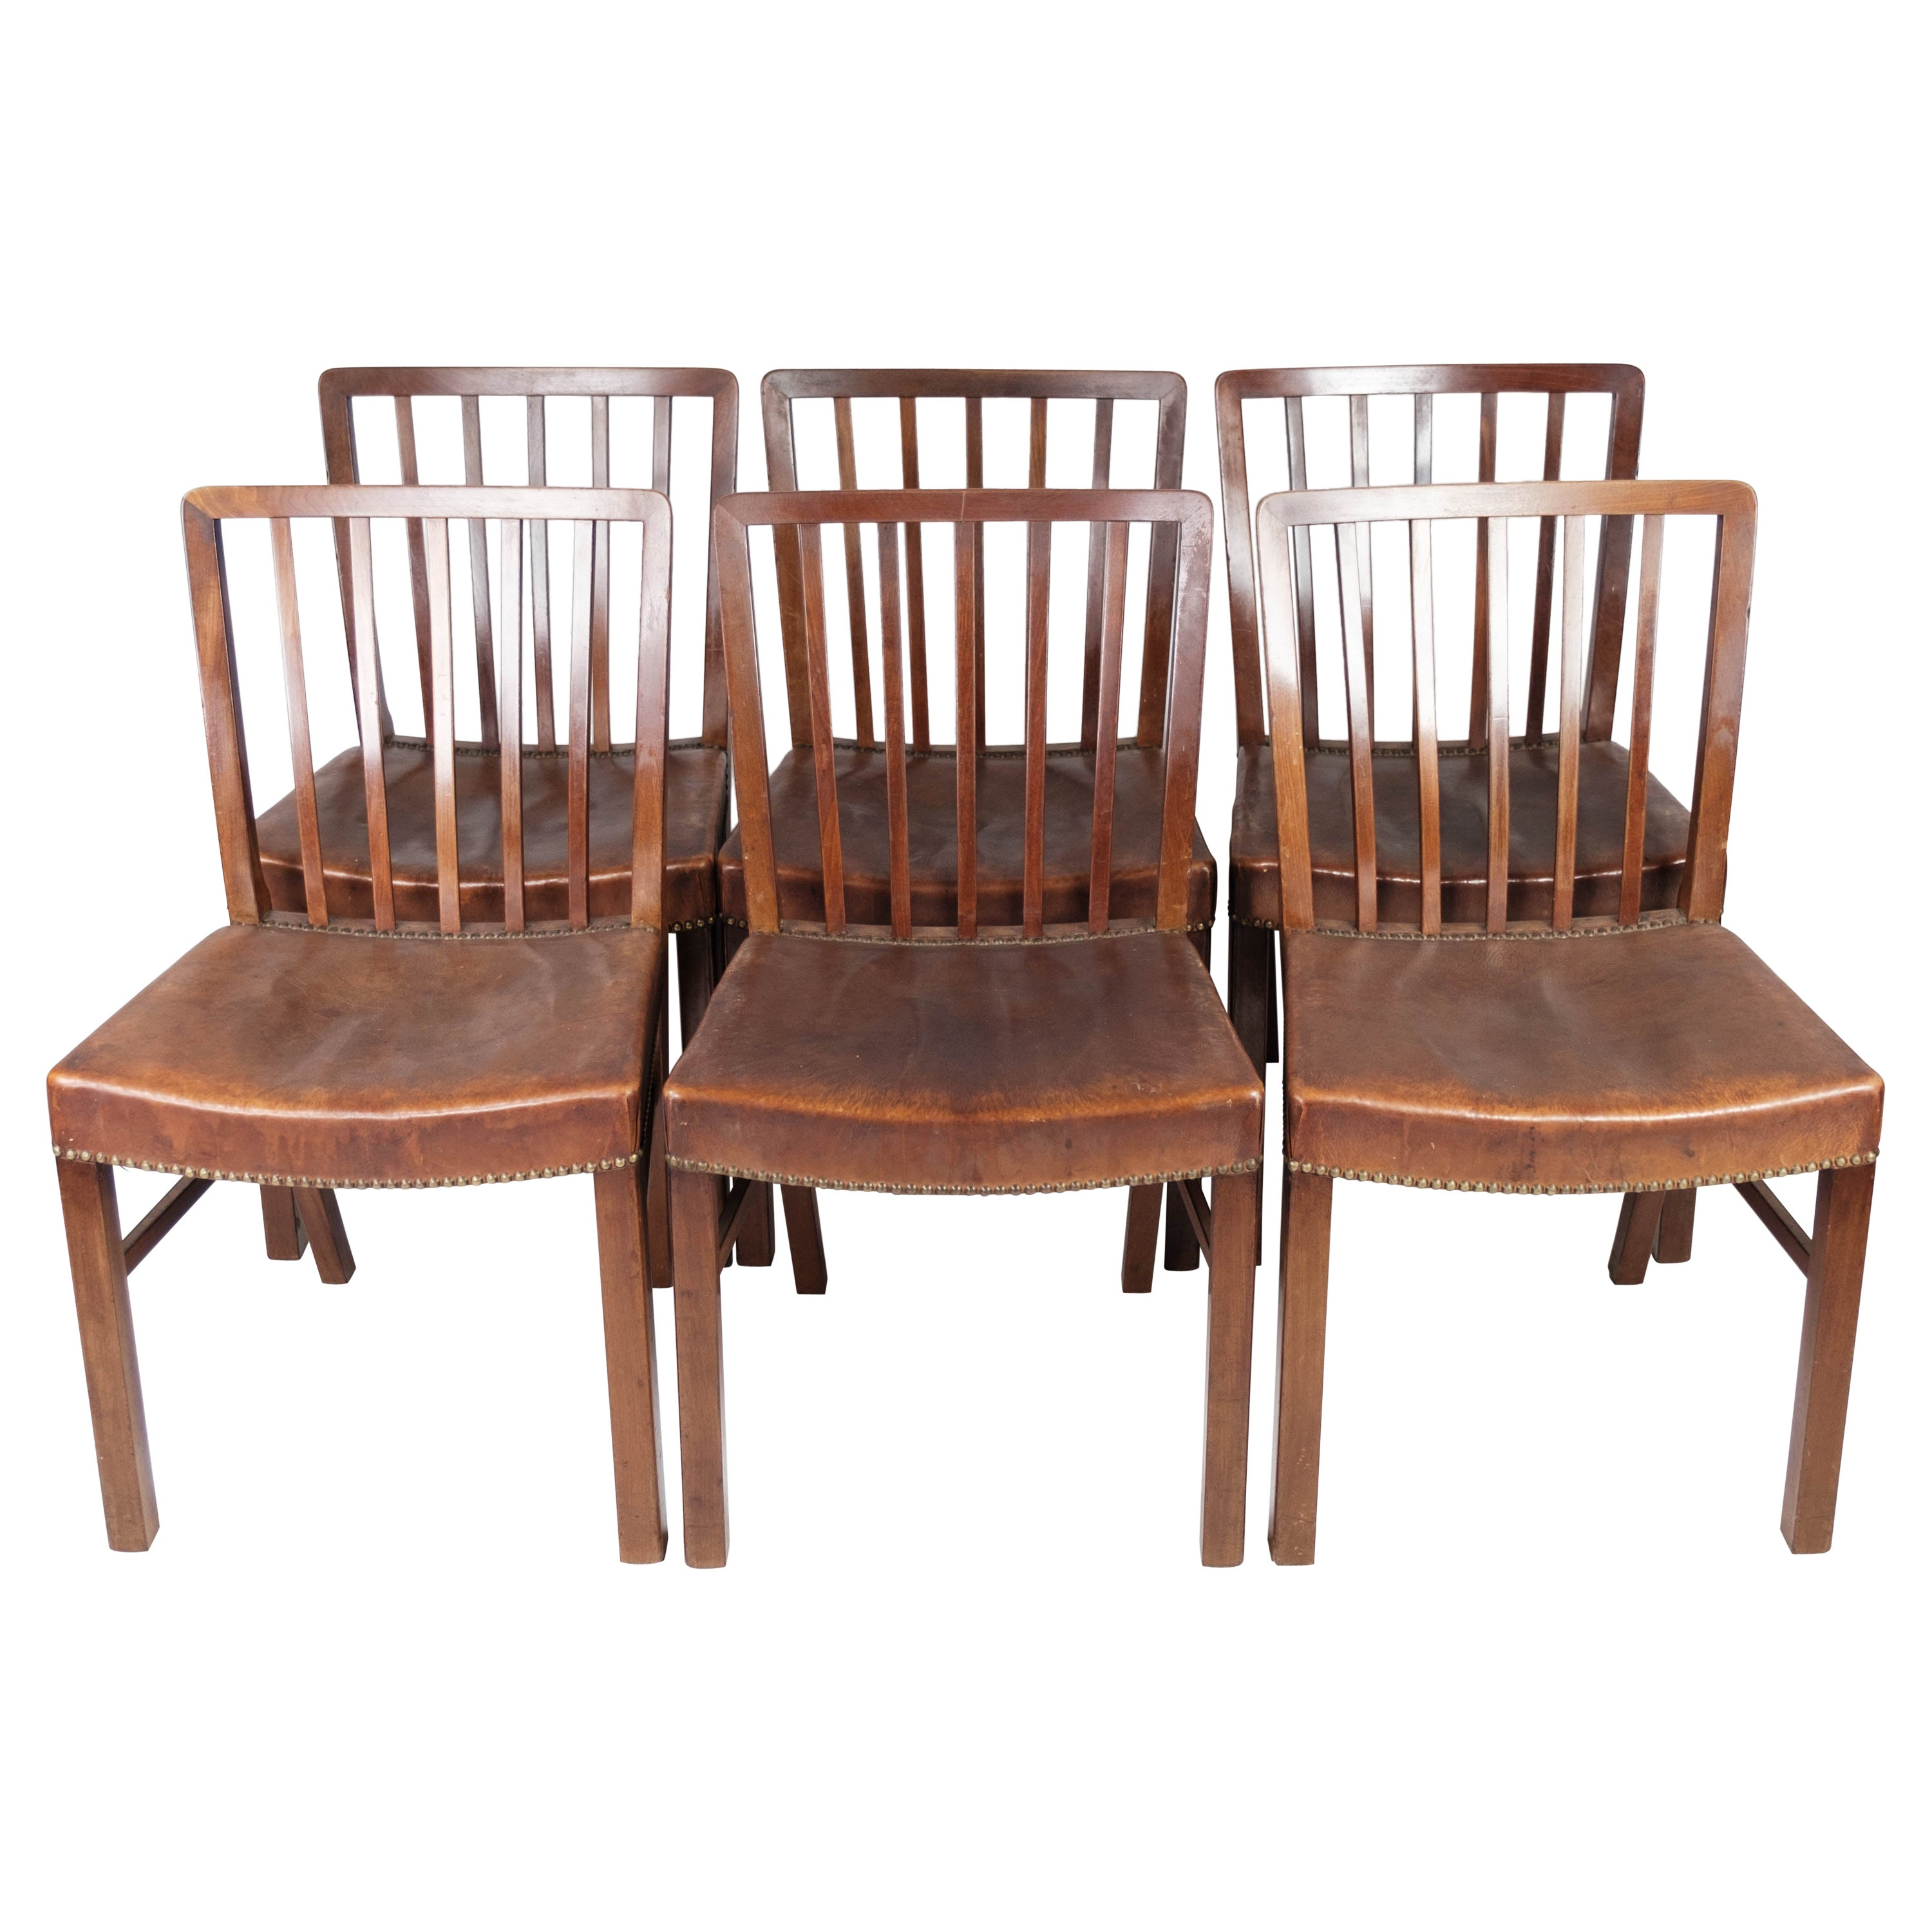 Set of Six Dining Room Chairs of Mahogany by Fritz Hansen, 1940s